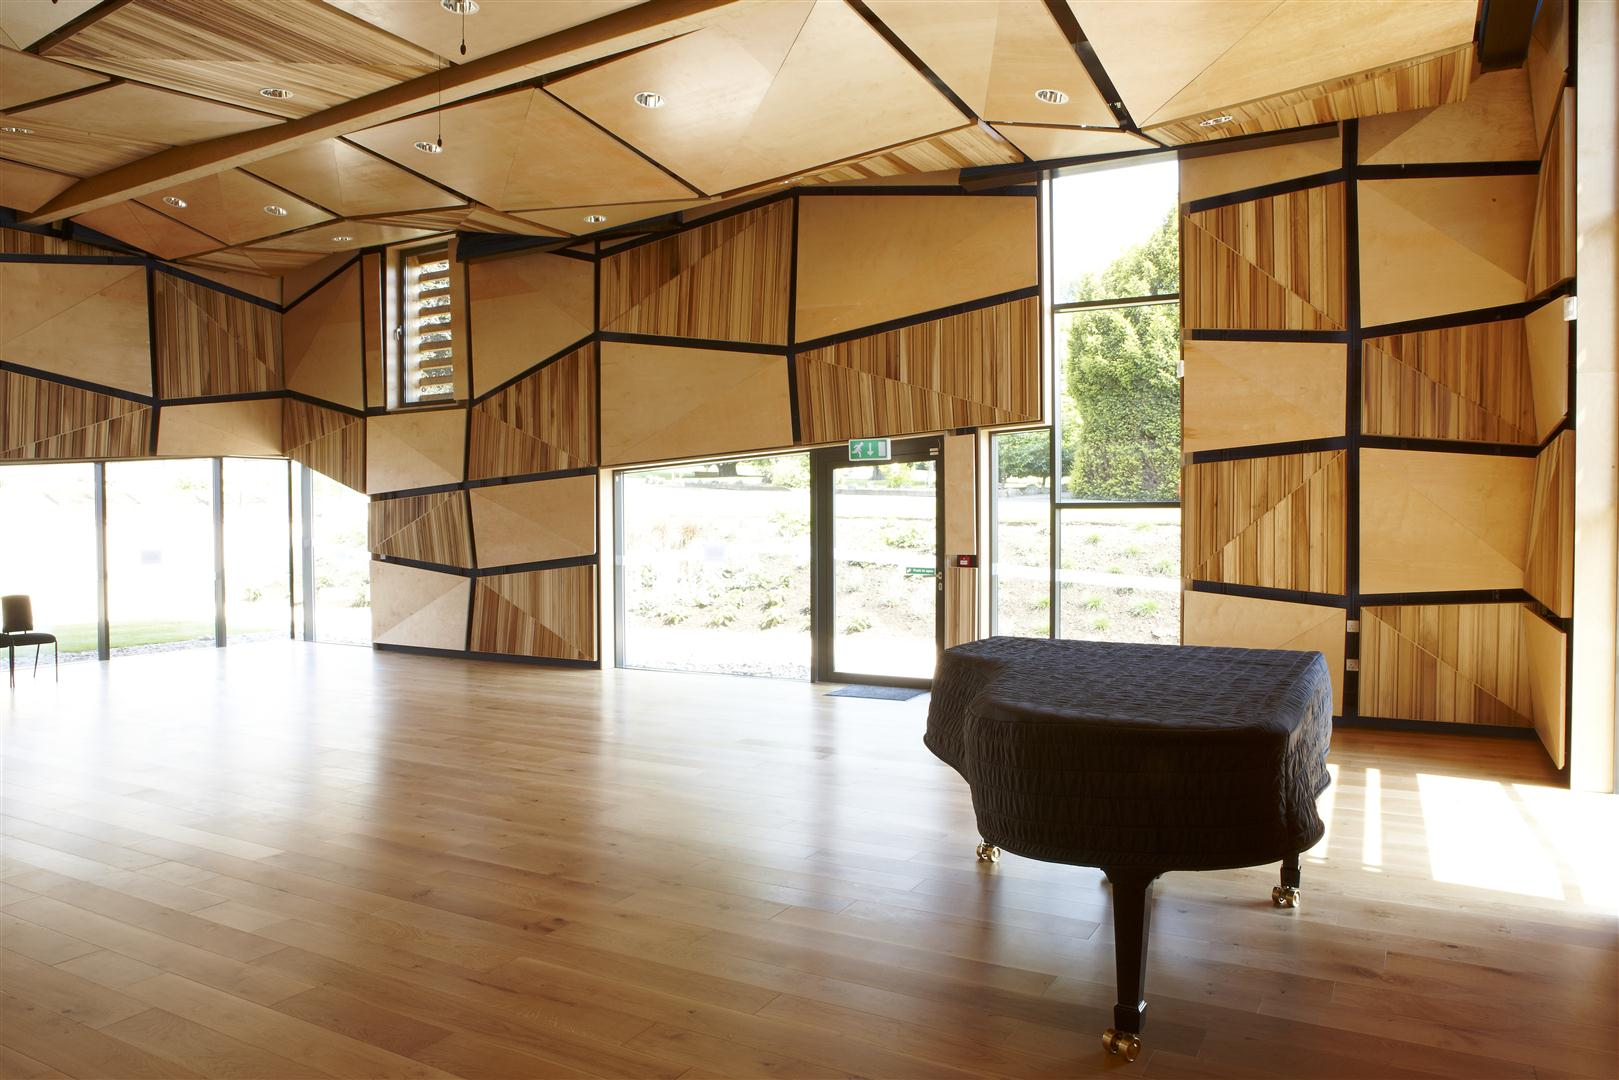 Bespoke acoustic solutions